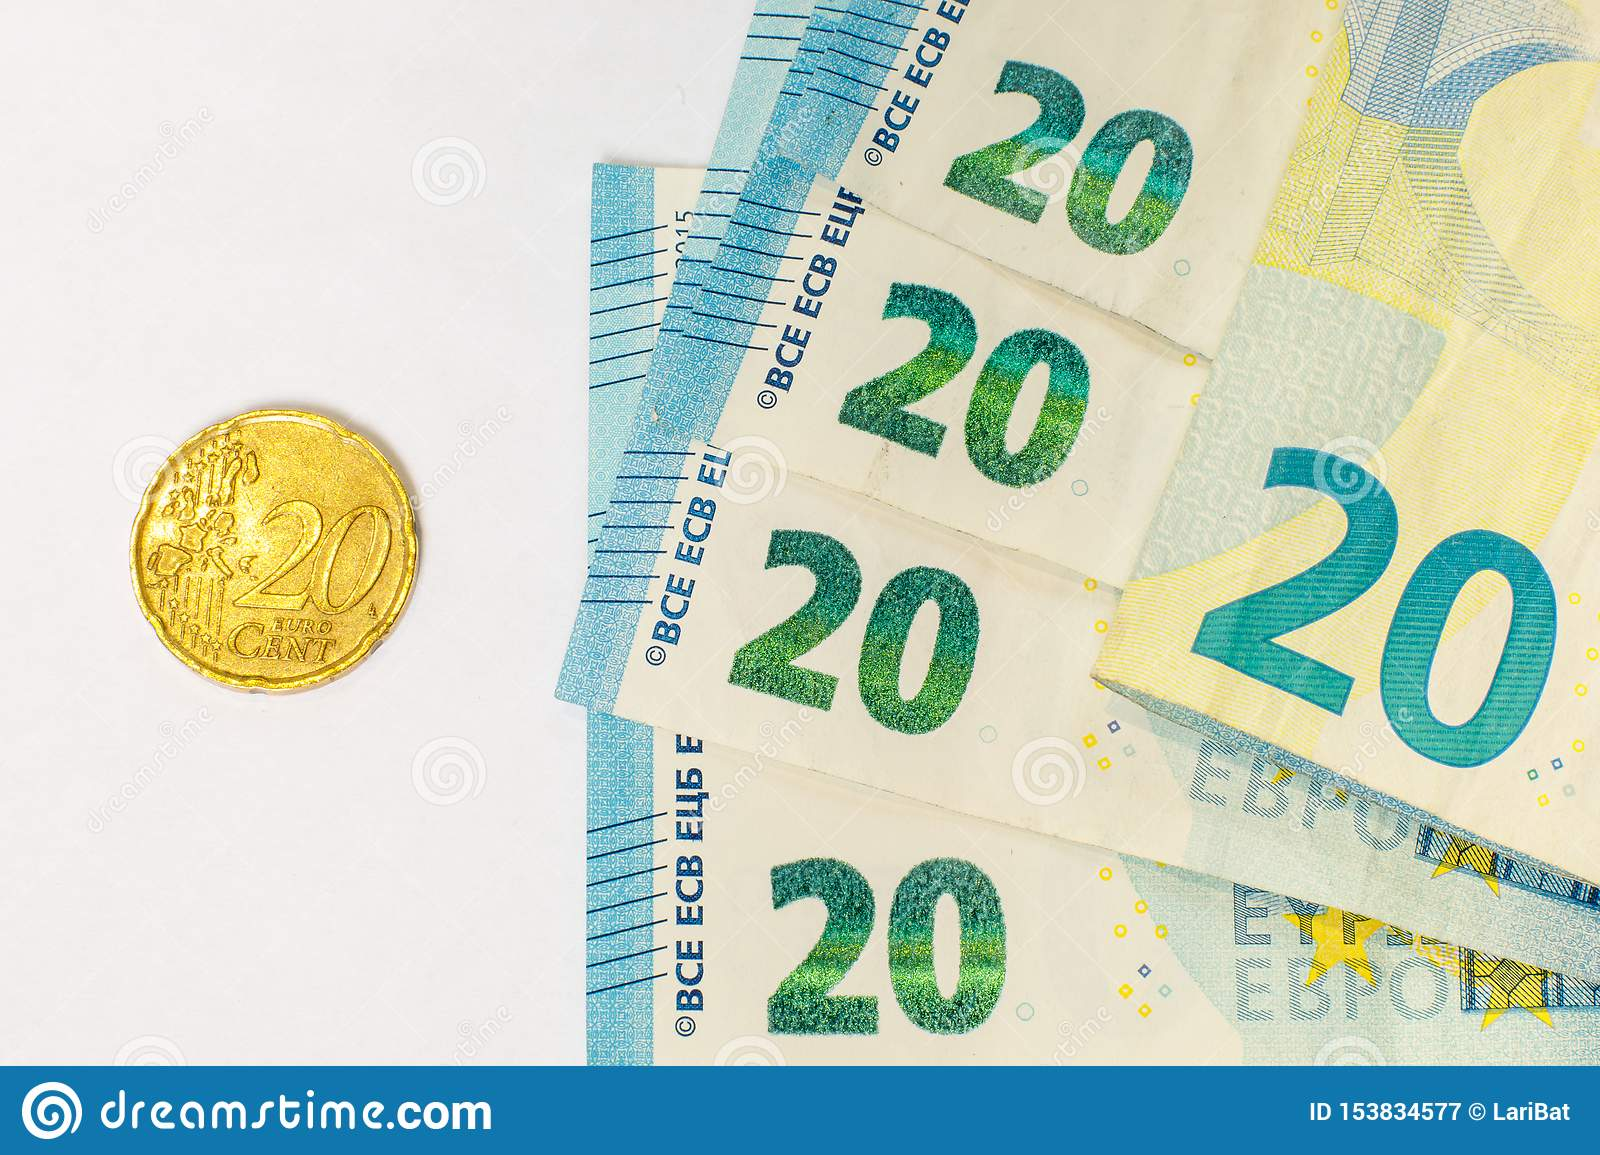 Several banknotes of 20 euros and a coin of 20 cents. The concept of opposing large and small earnings, saving or spending money